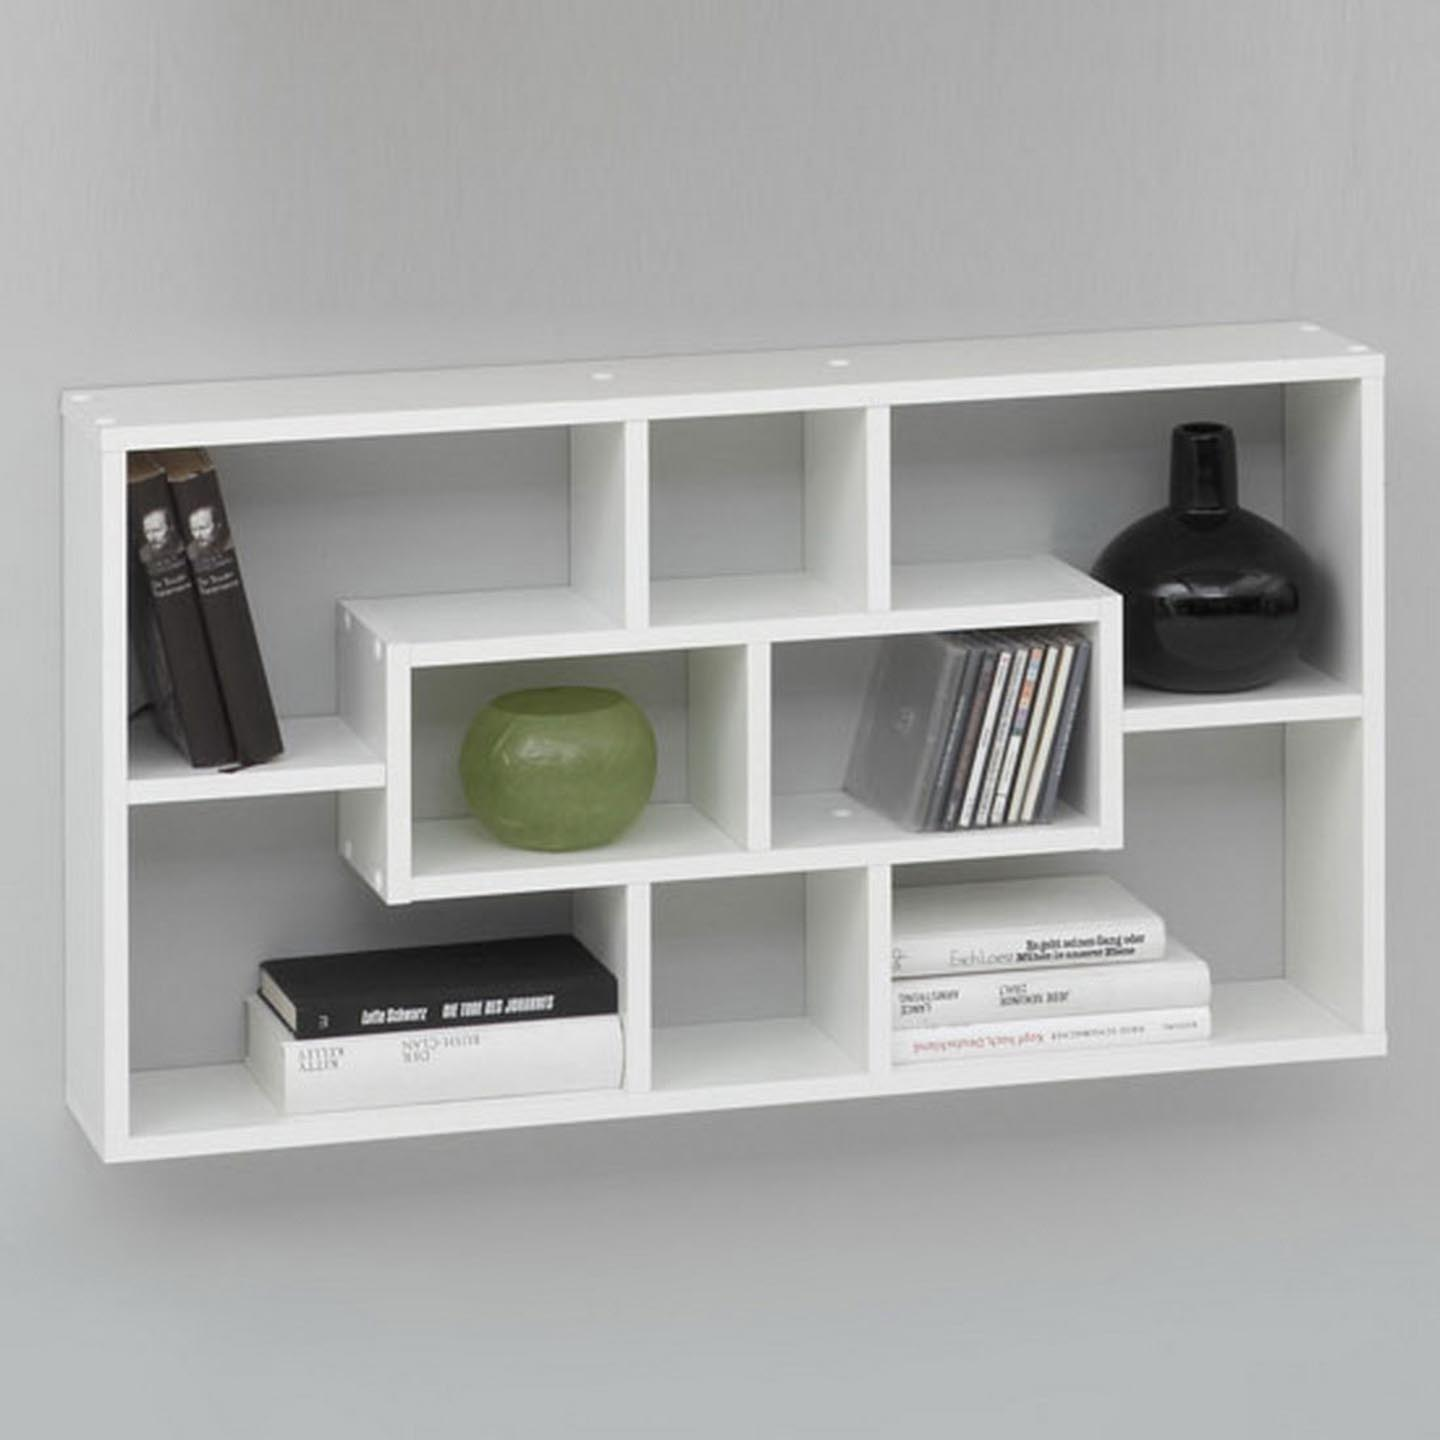 Unique Wall Shelf Decorative Wall Shelves In The Modern Interior Best